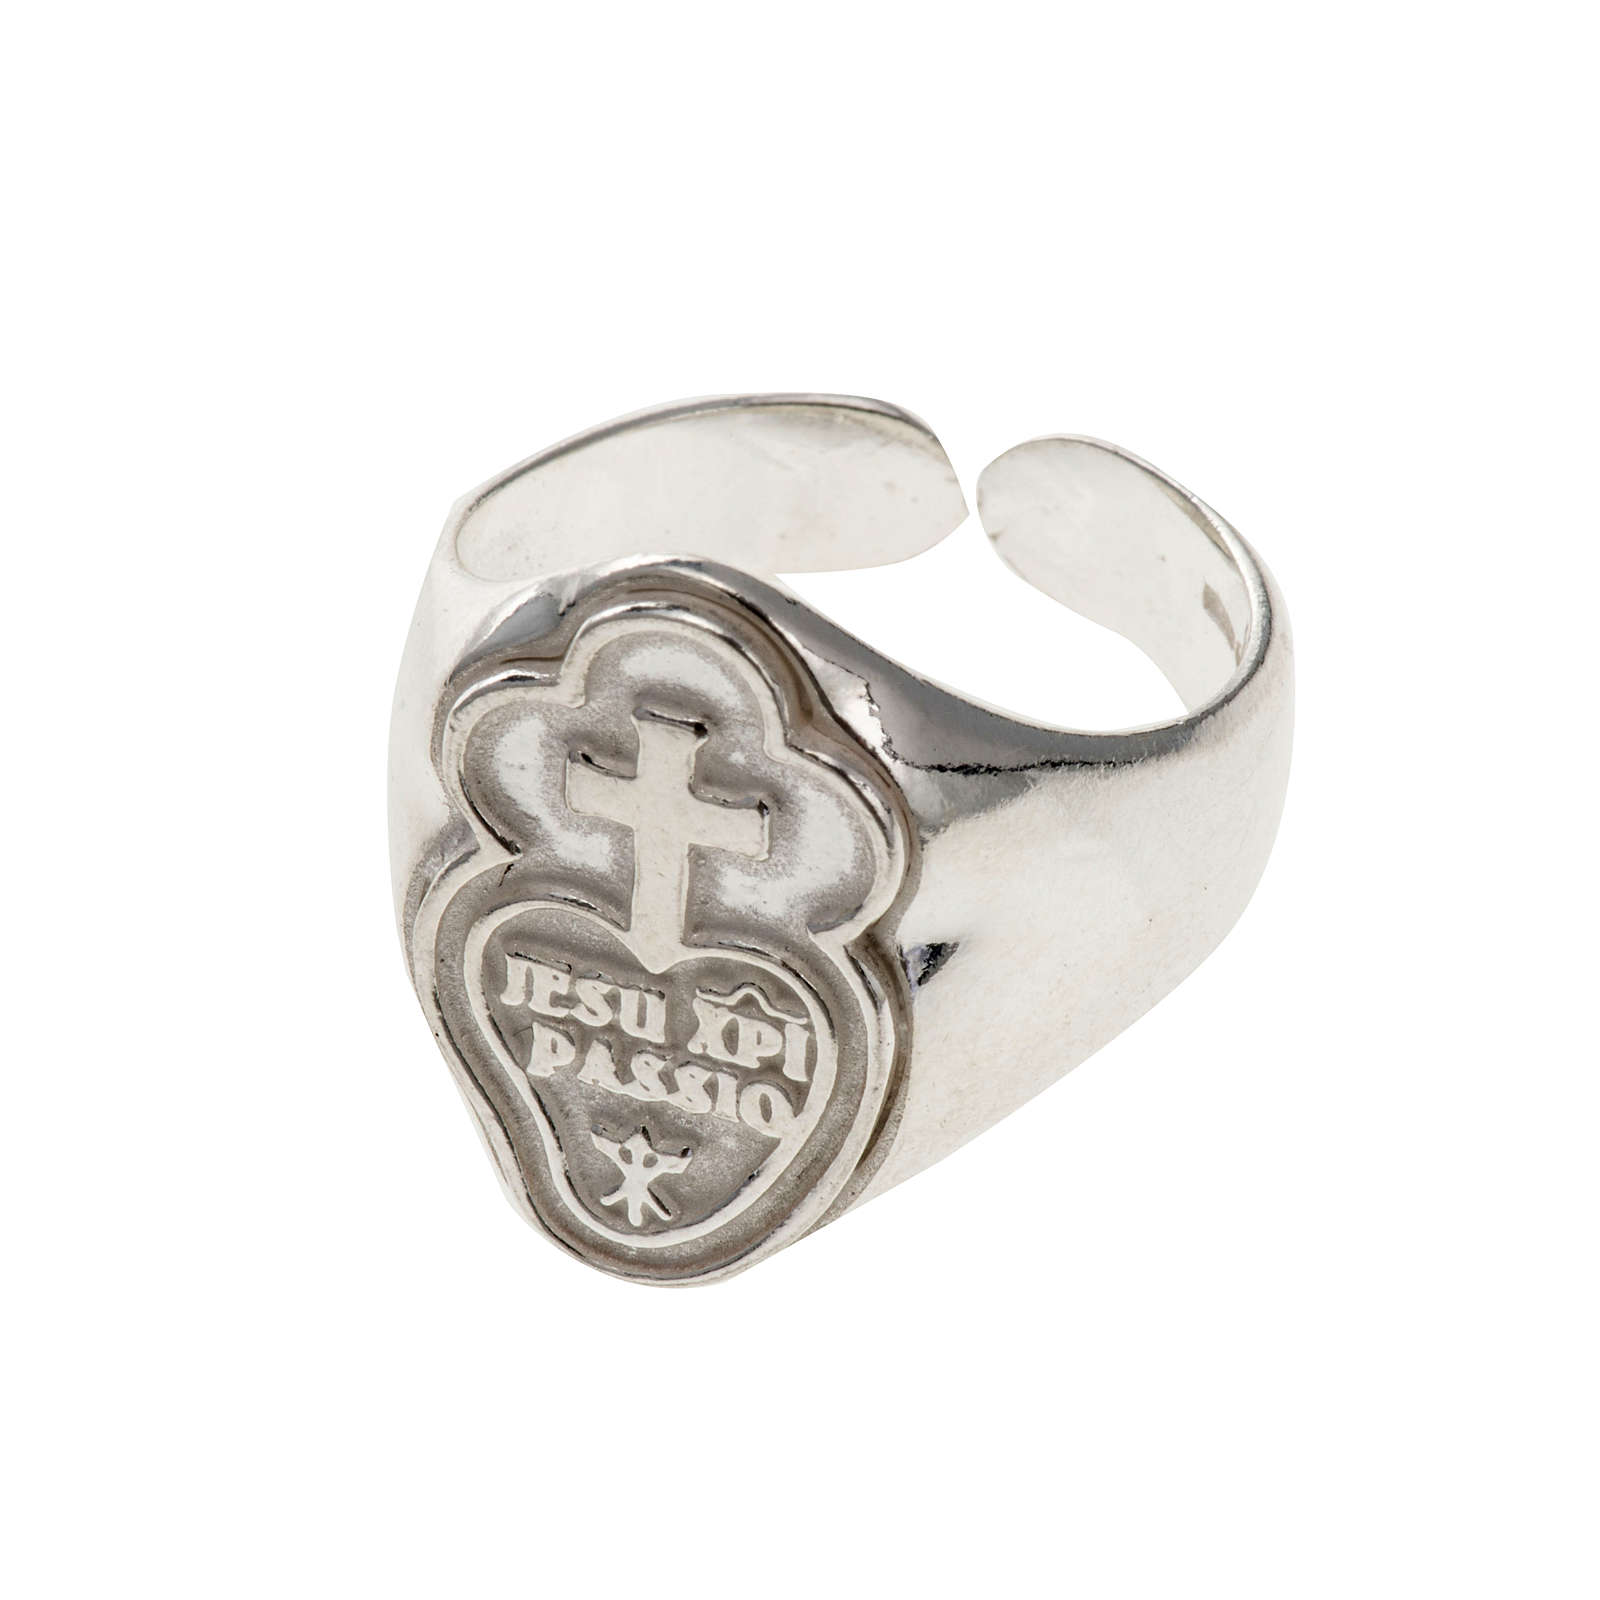 Bishop's ring made of 925 silver, Passionists 3